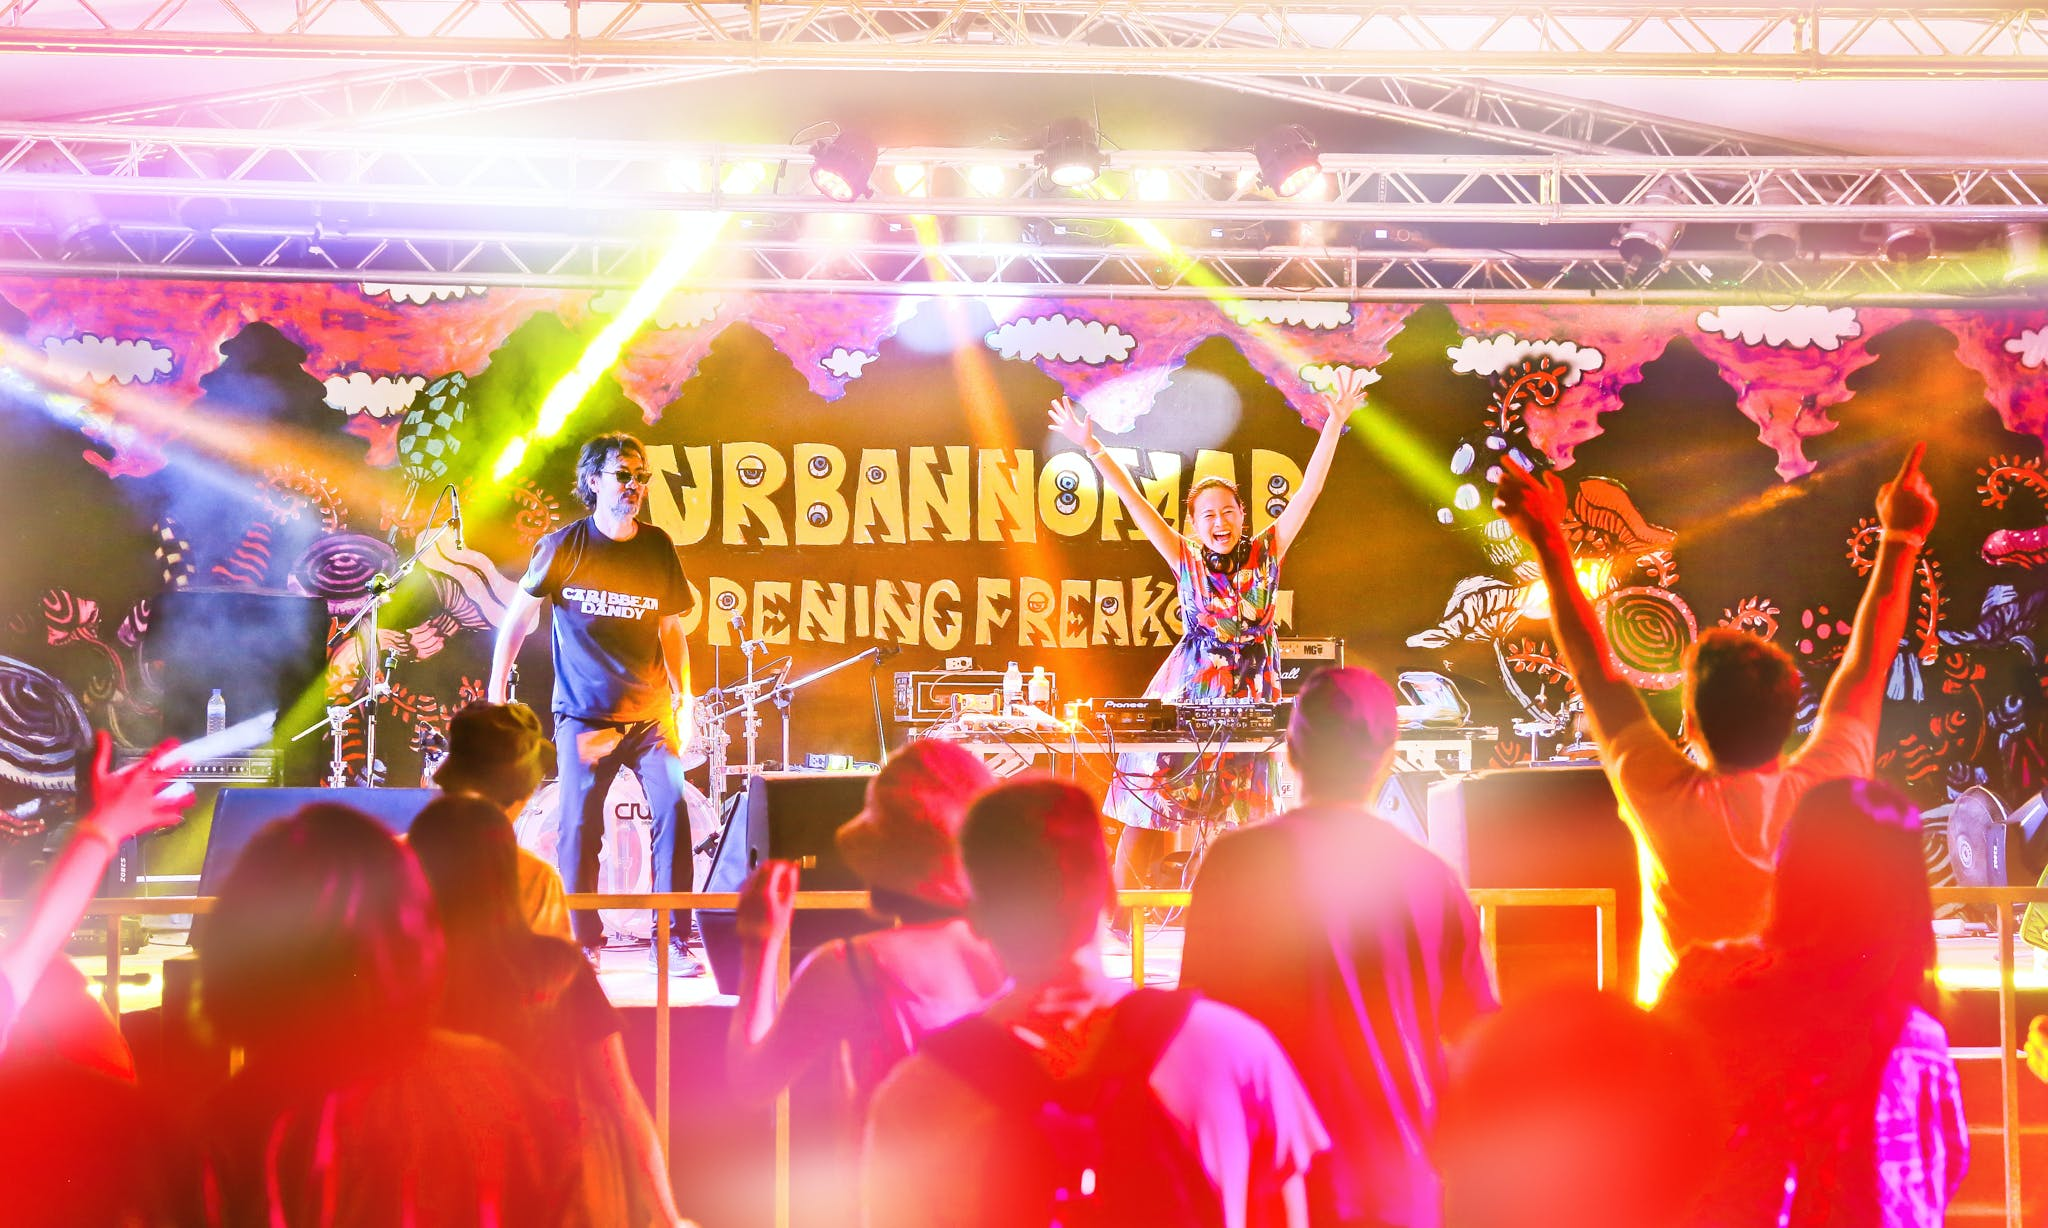 The Ultimate Guide to Taipei's Urban Nomad Opening Freakout